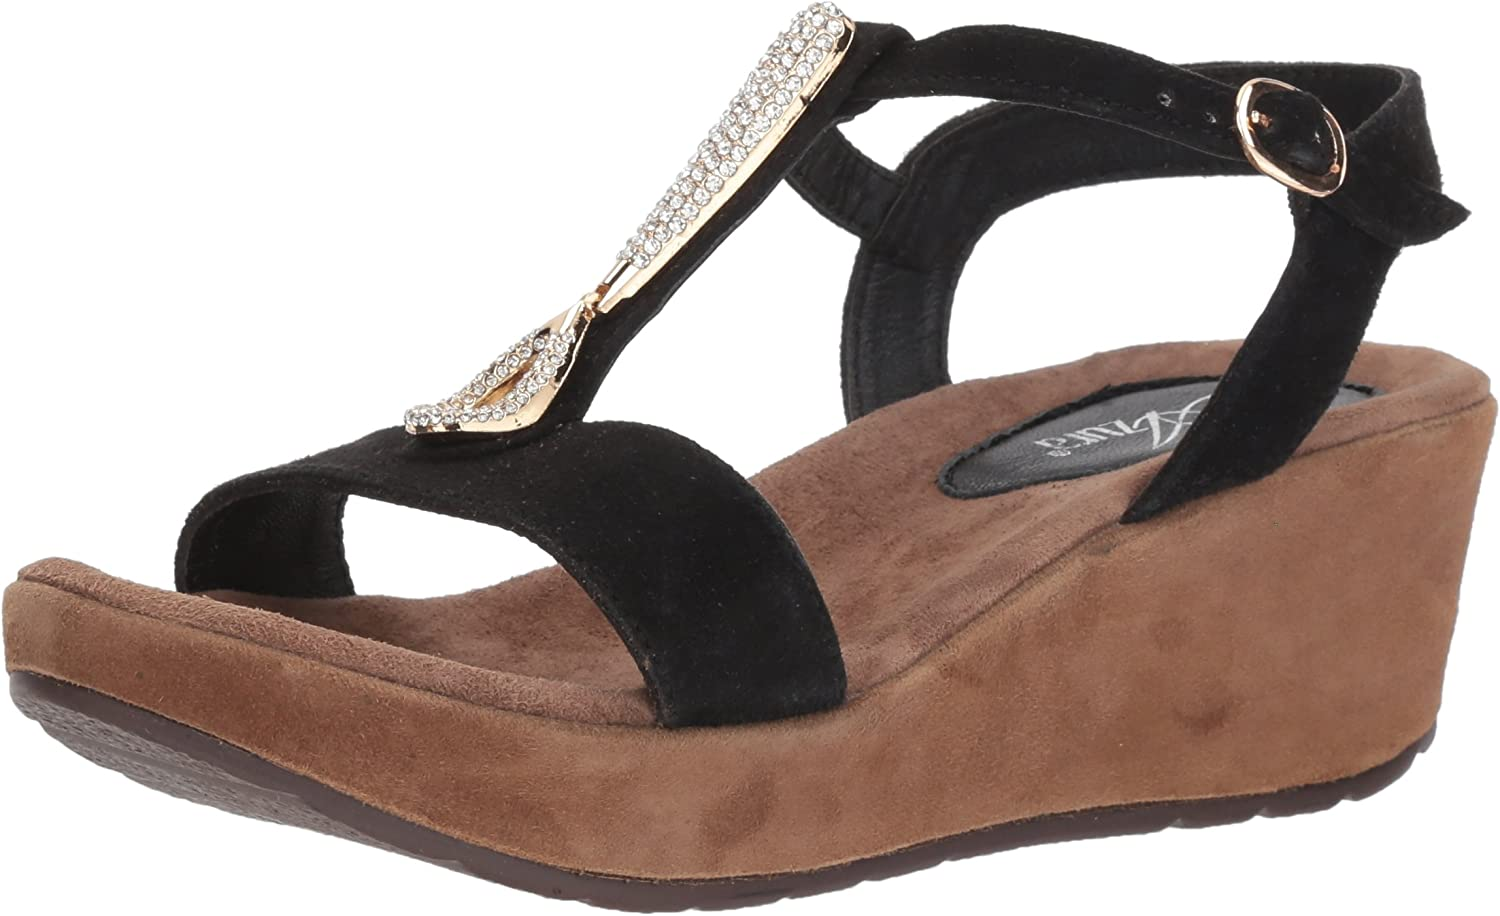 Azura by Spring Step Women's Lawna-Bs Heeled Sandal